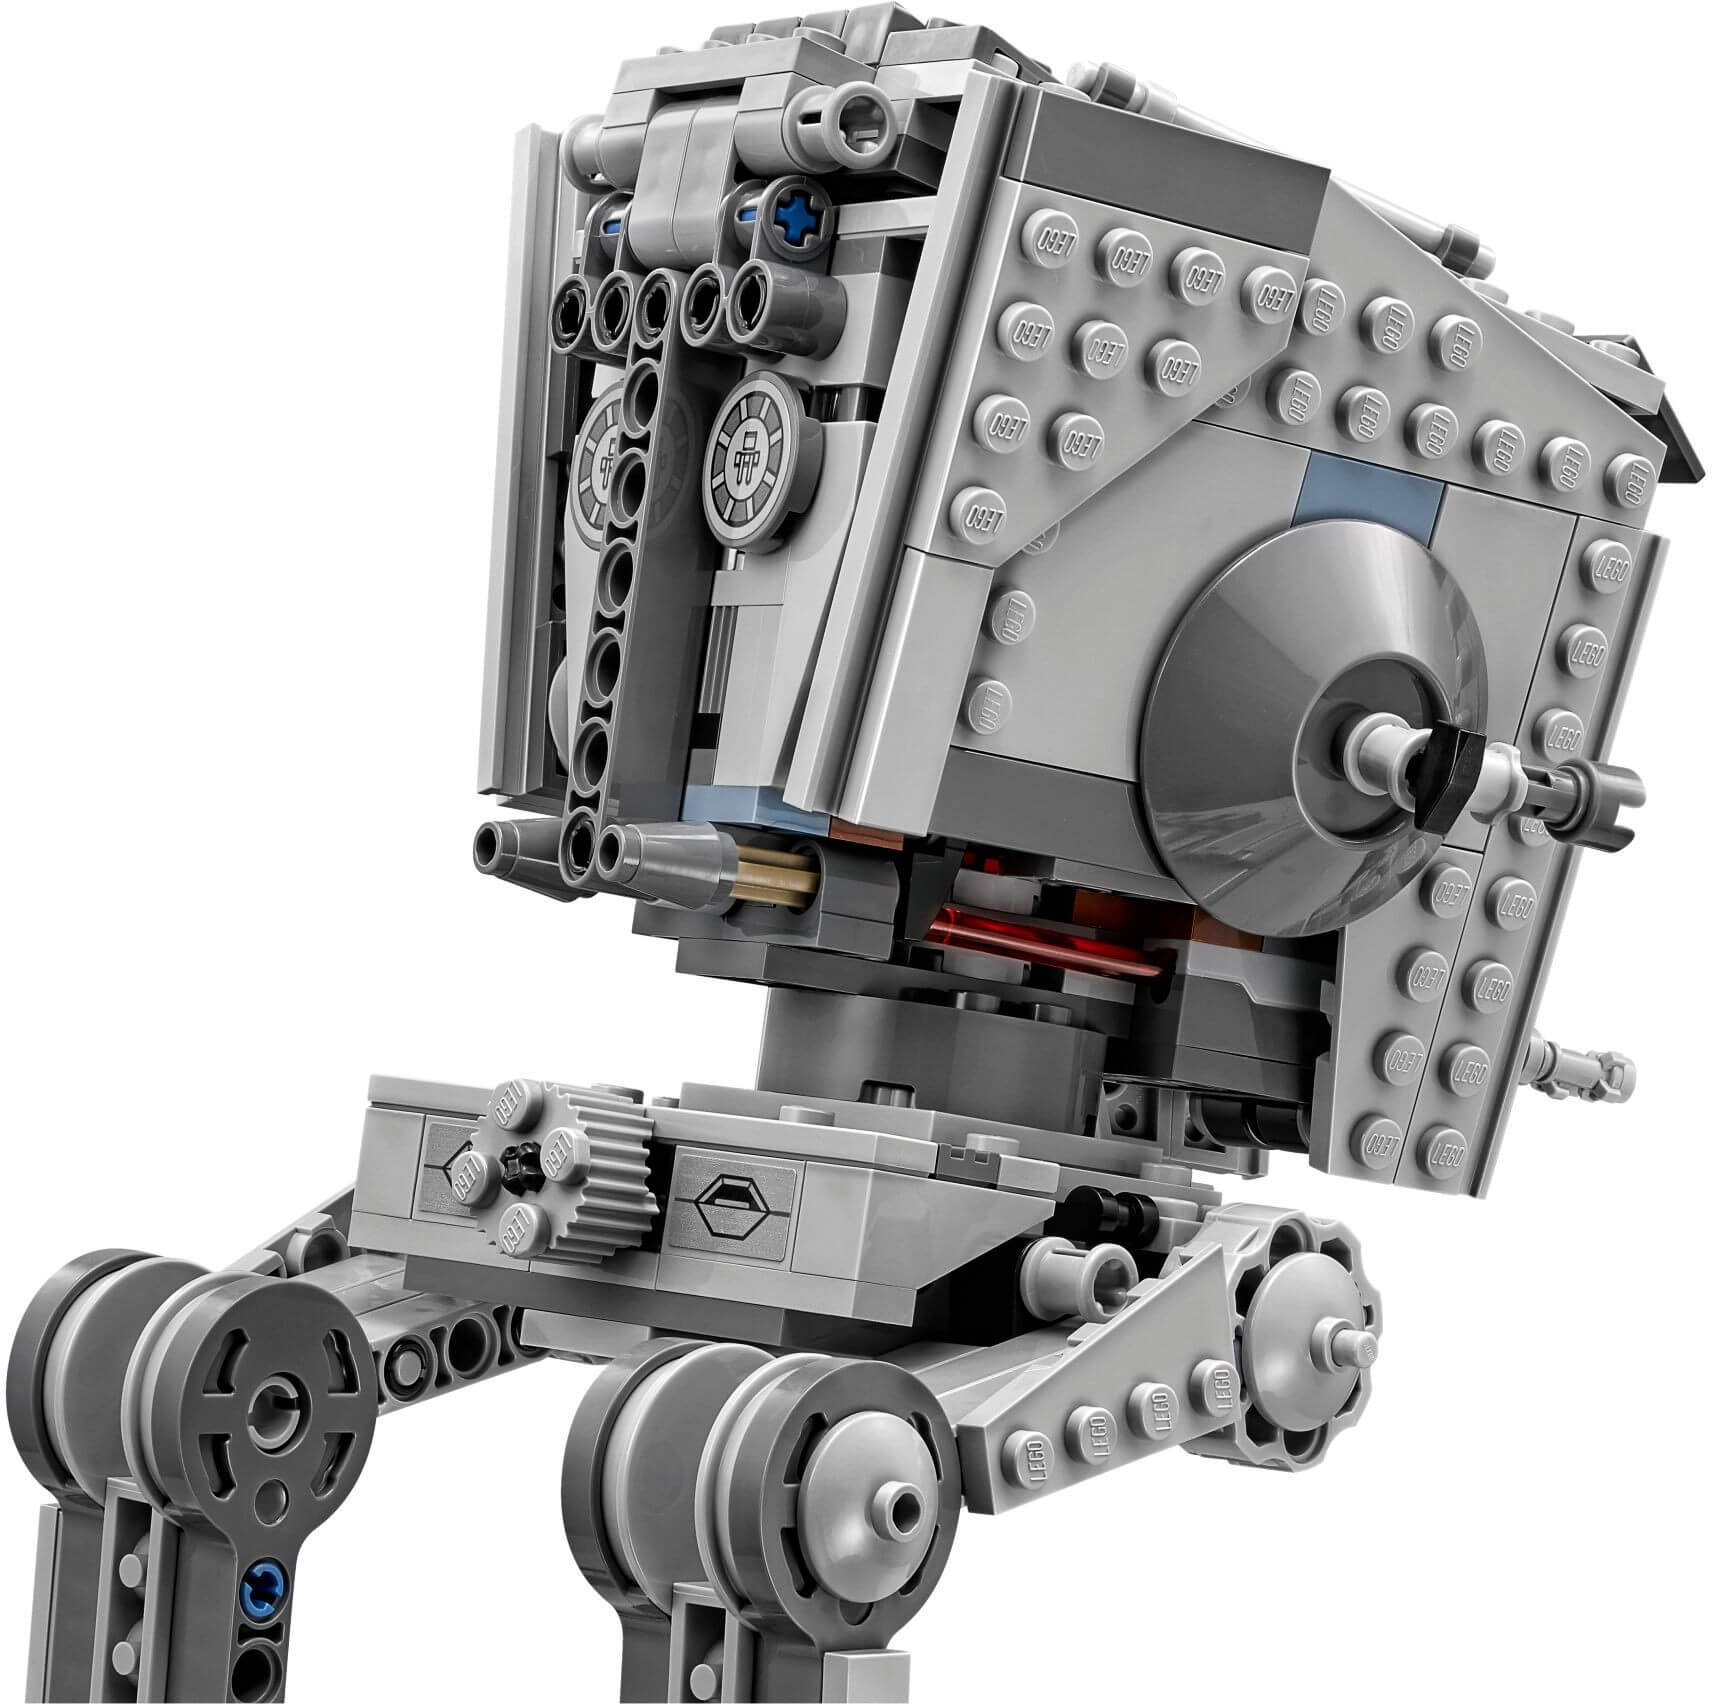 LEGO Star Wars 75153 - AT-ST Walker